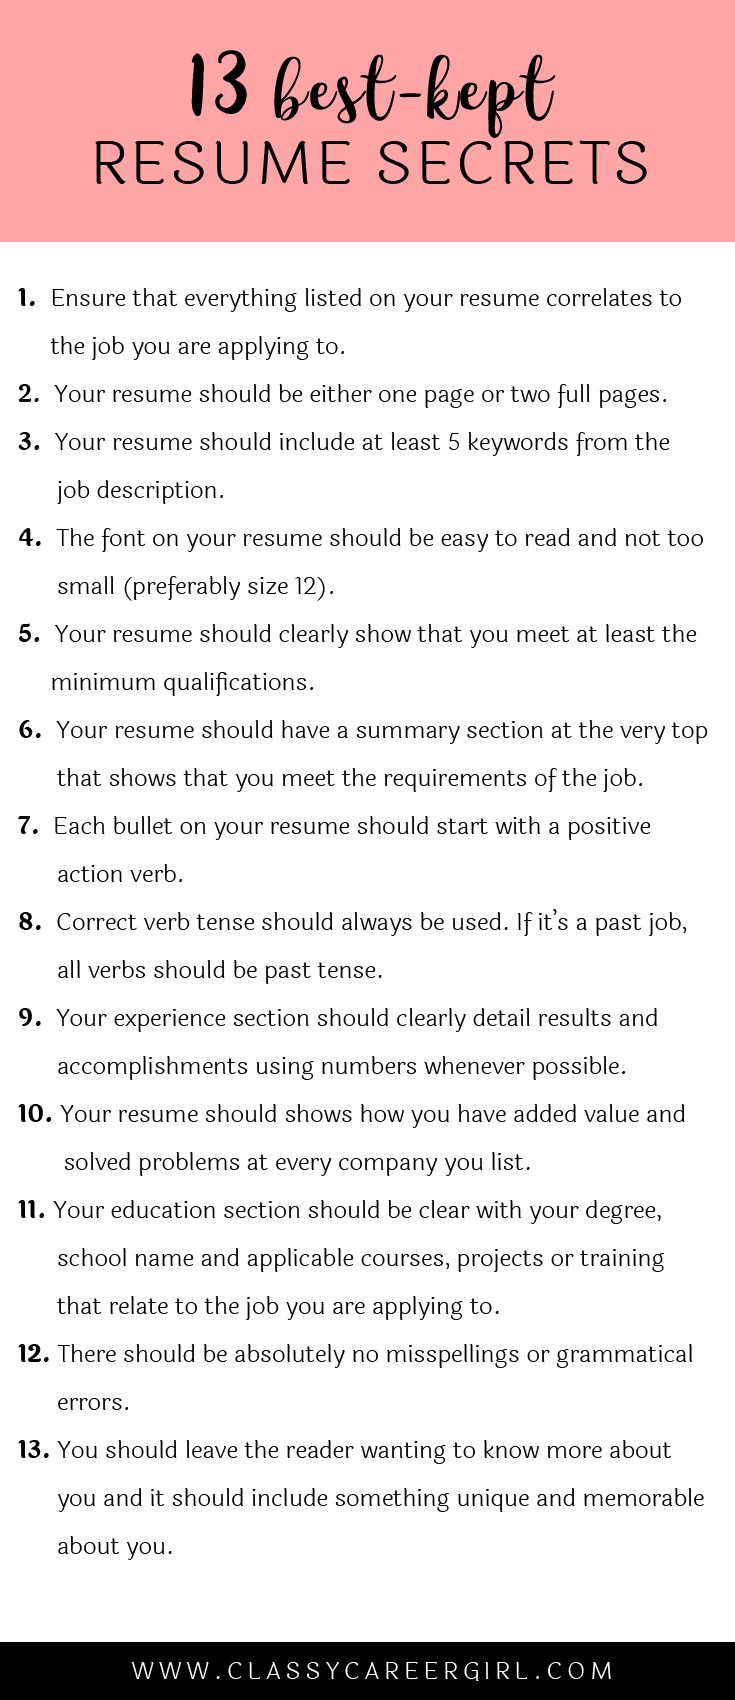 Opposenewapstandardsus  Marvelous  Ideas About Resume On Pinterest  Cv Format Resume Cv And  With Gorgeous Some Hiring Managers Will Toss Your Resume Out If You Dont Know These  With Adorable What A Resume Should Look Like Also Whats A Resume In Addition Create Free Resume And Resume For First Job As Well As Professional Resume Writer Additionally Resume Download From Pinterestcom With Opposenewapstandardsus  Gorgeous  Ideas About Resume On Pinterest  Cv Format Resume Cv And  With Adorable Some Hiring Managers Will Toss Your Resume Out If You Dont Know These  And Marvelous What A Resume Should Look Like Also Whats A Resume In Addition Create Free Resume From Pinterestcom